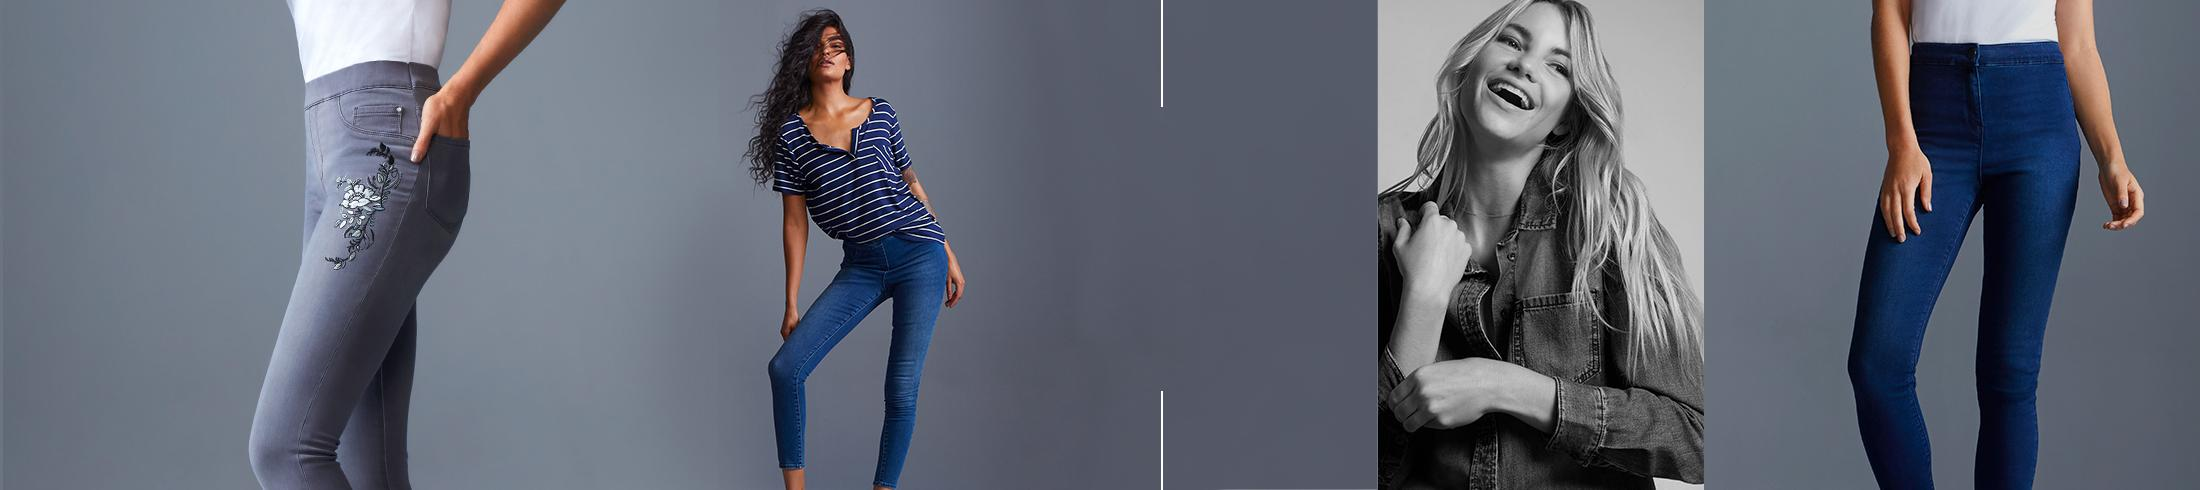 Refresh your denim with new jeans at George.com